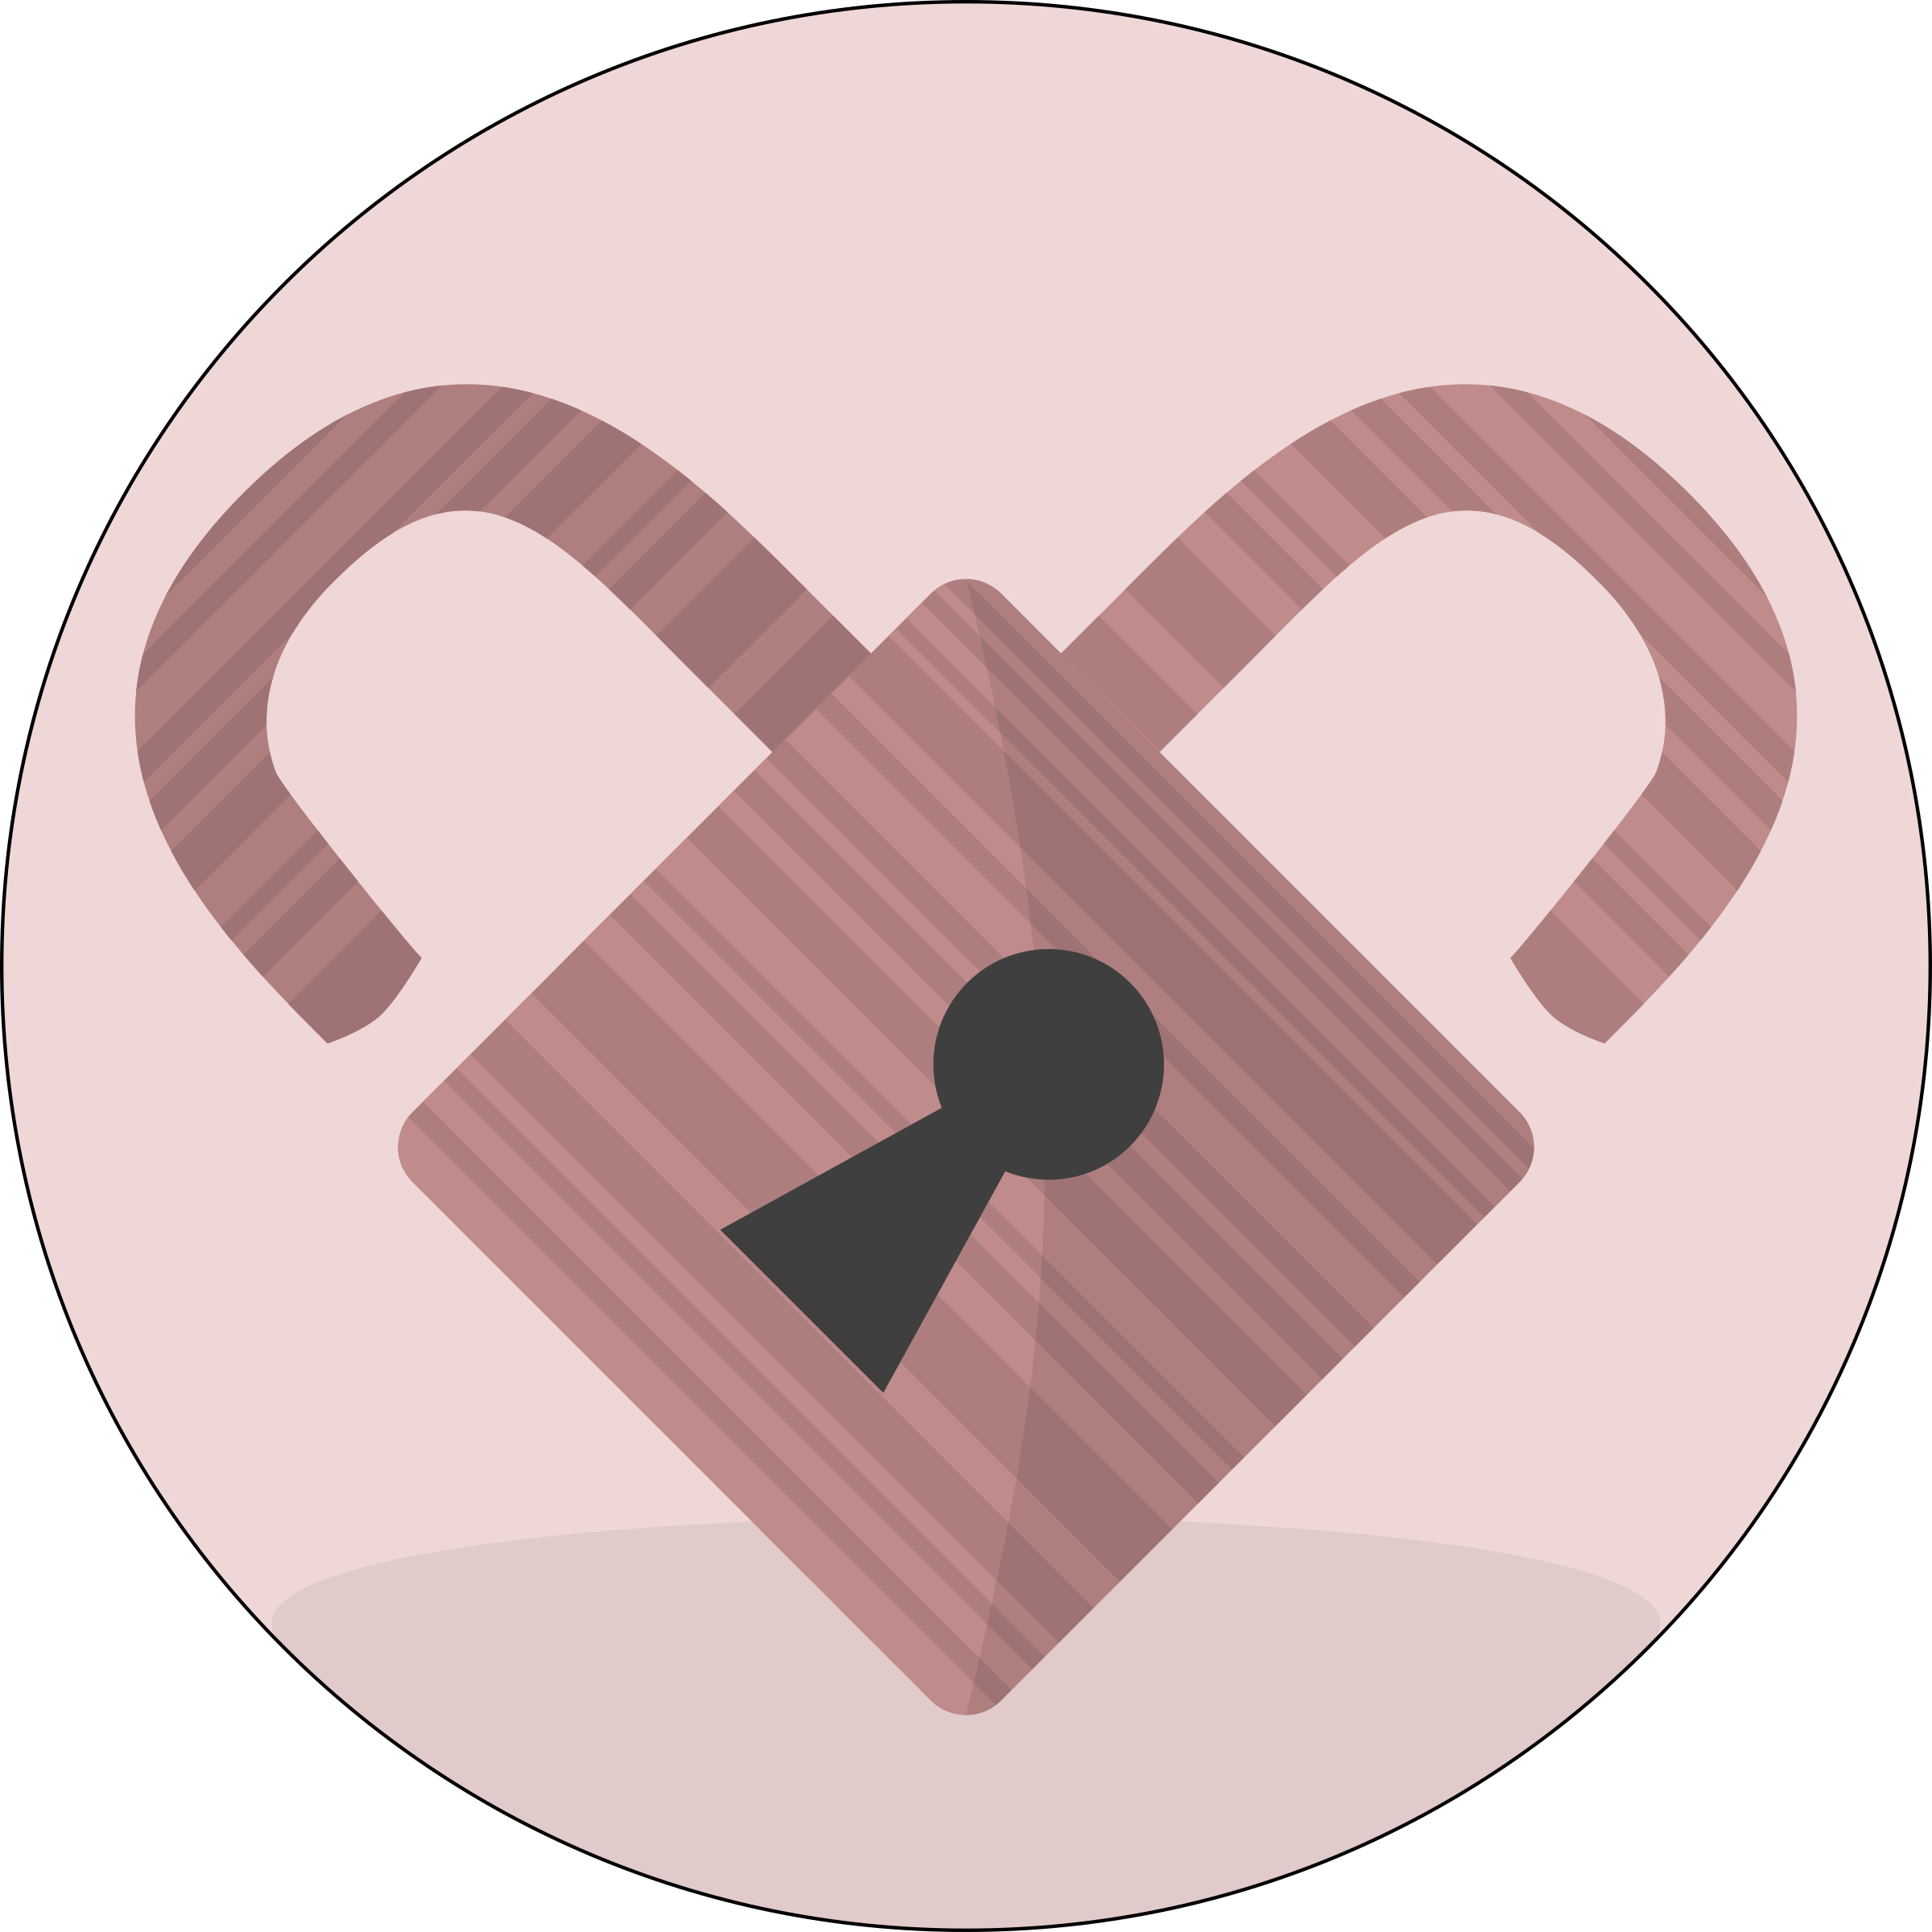 Pink big image png. Lock clipart heart